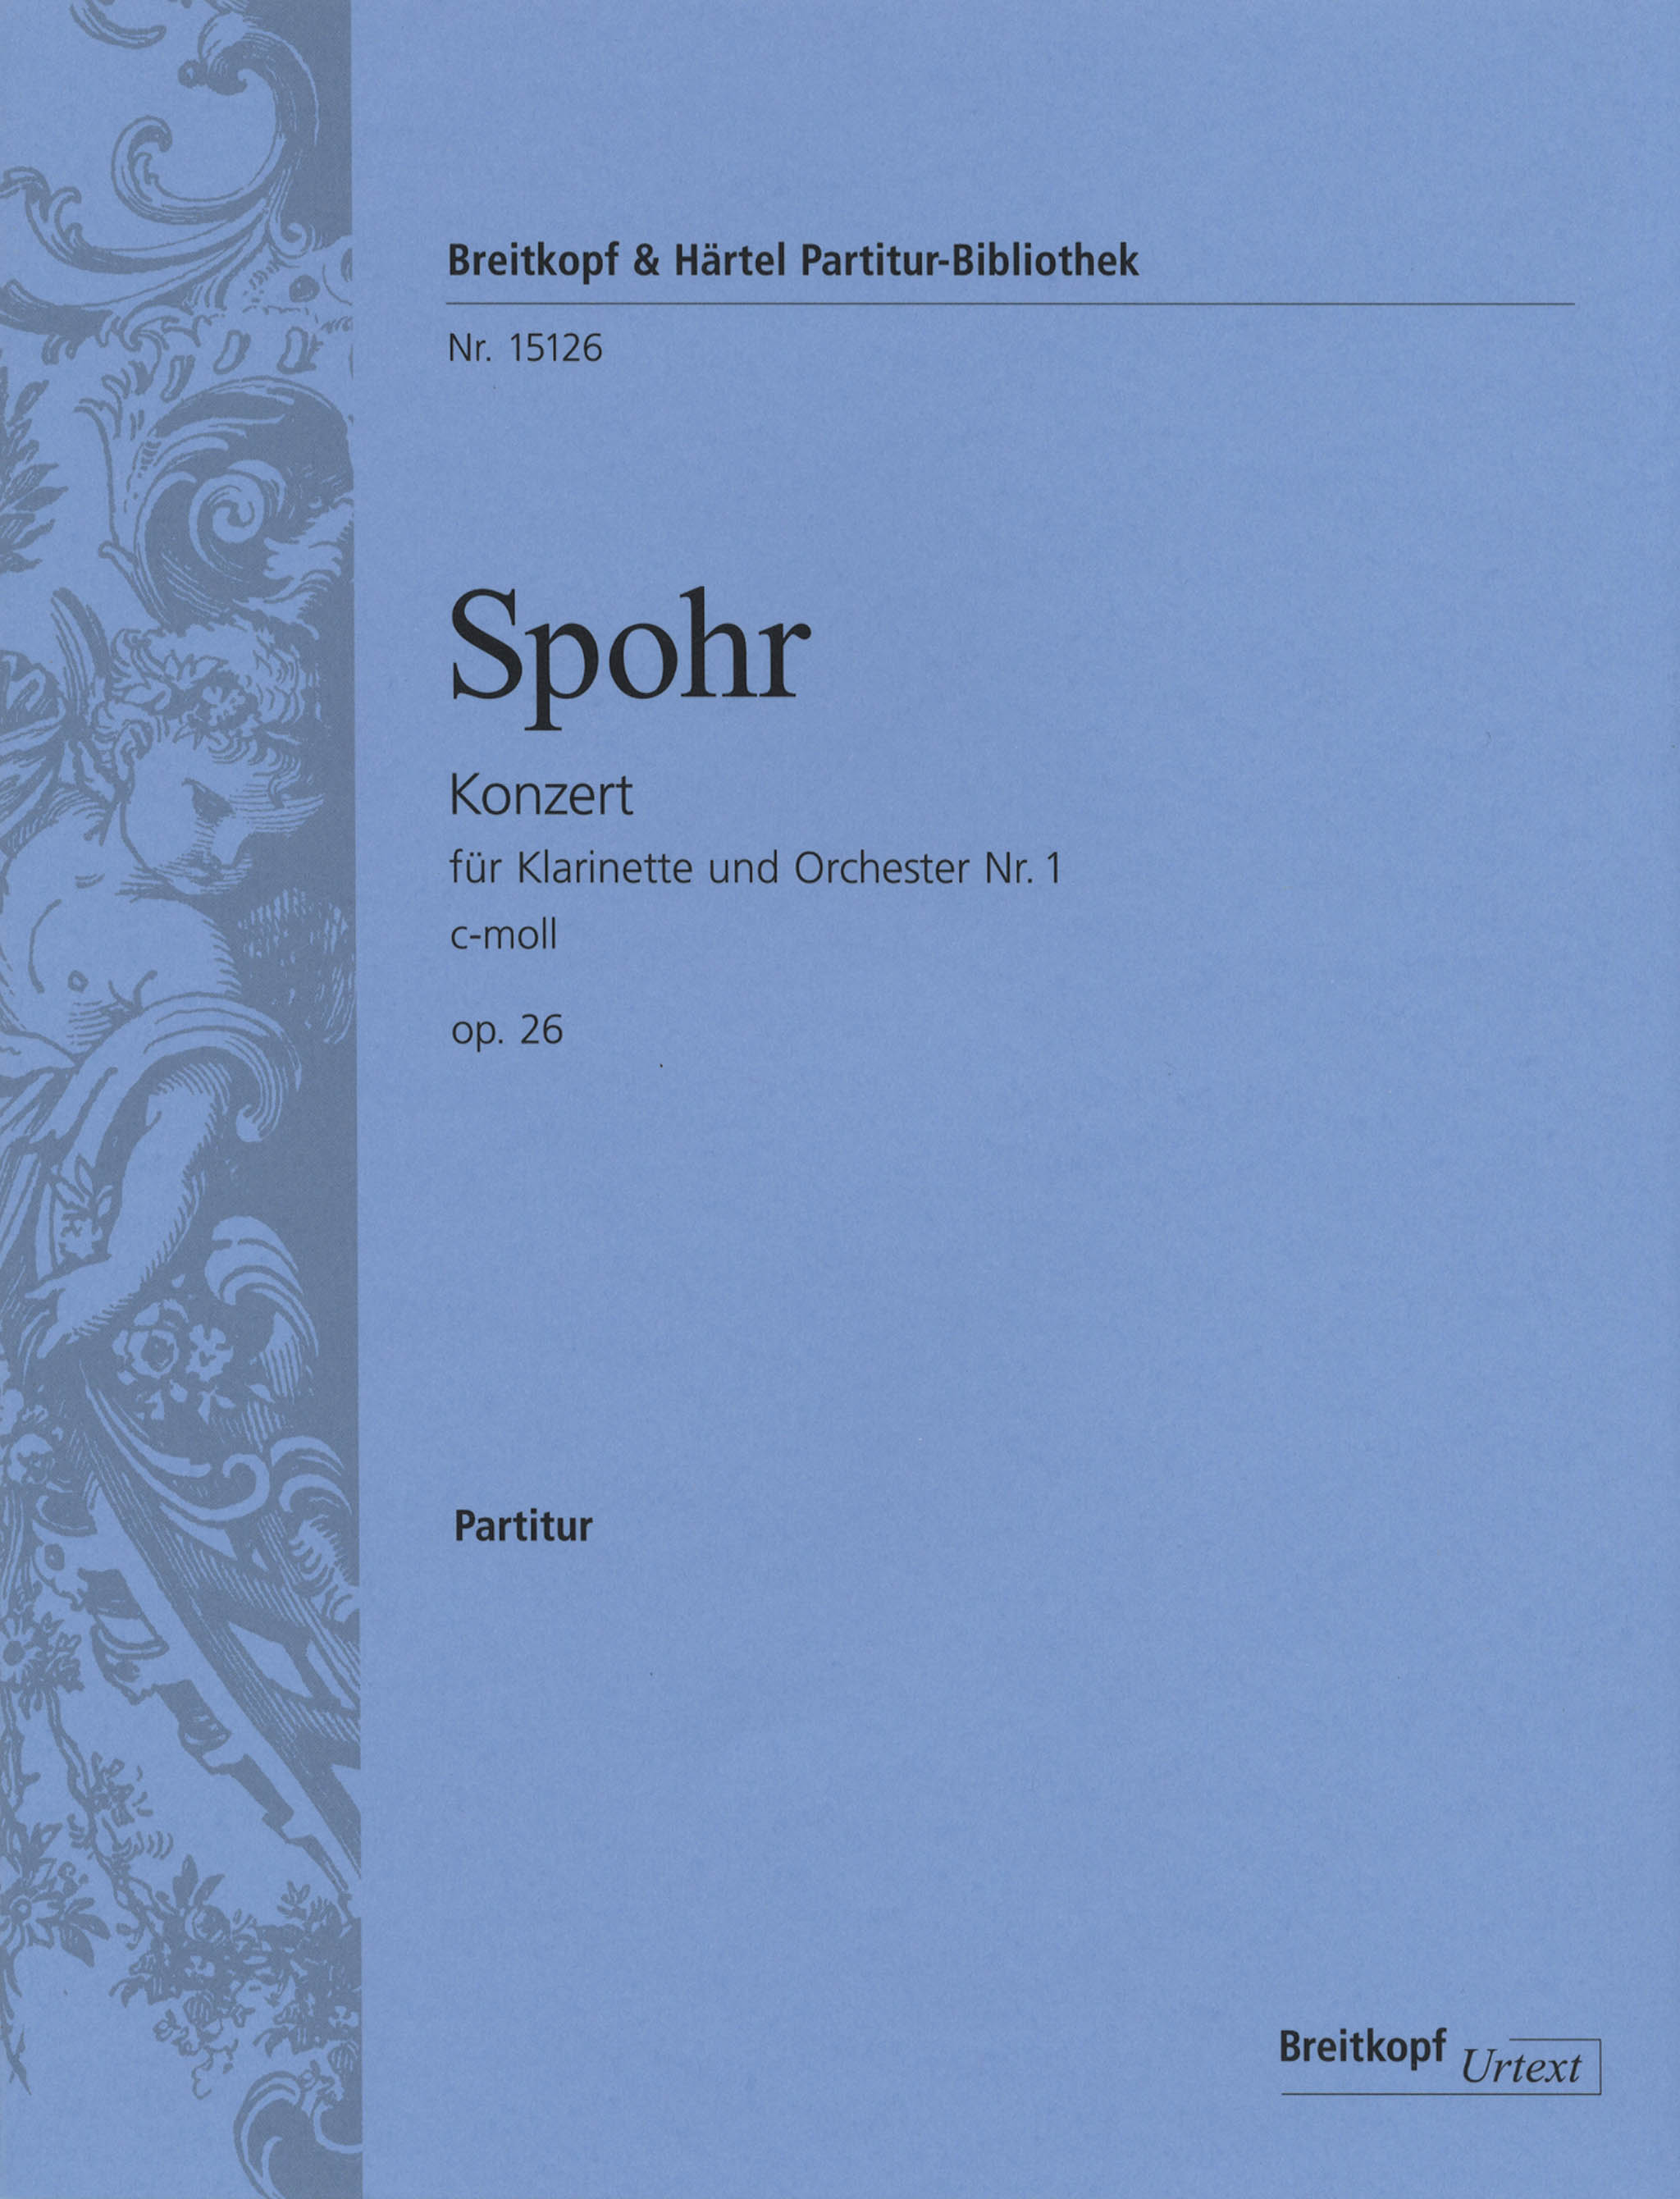 Spohr Clarinet Concerto No. 1 in C Minor, Op. 26 Cover